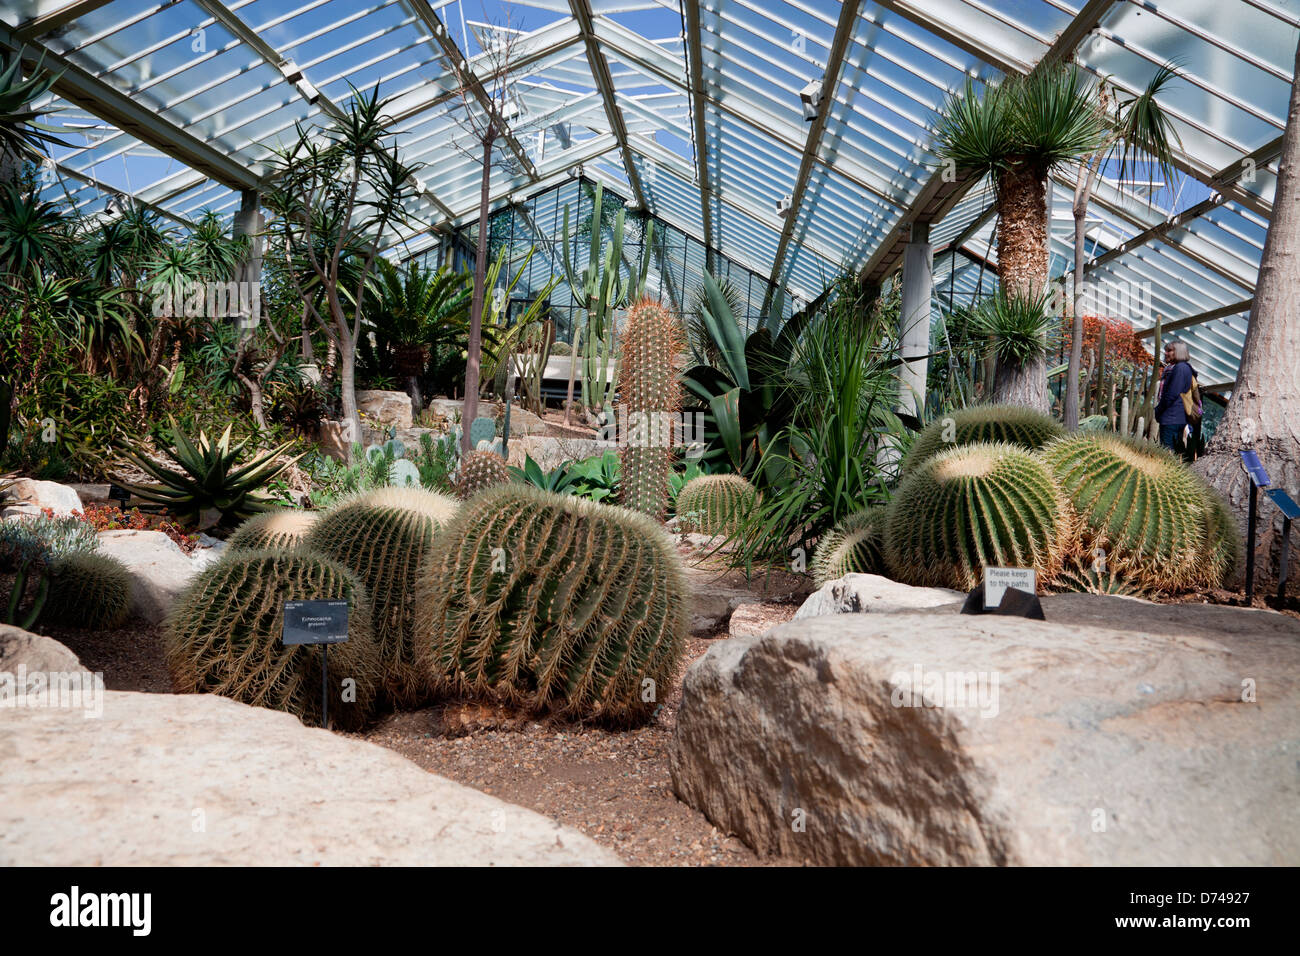 Princess of Wales Conservatory at Kew Gardens in London, UK - Stock Image